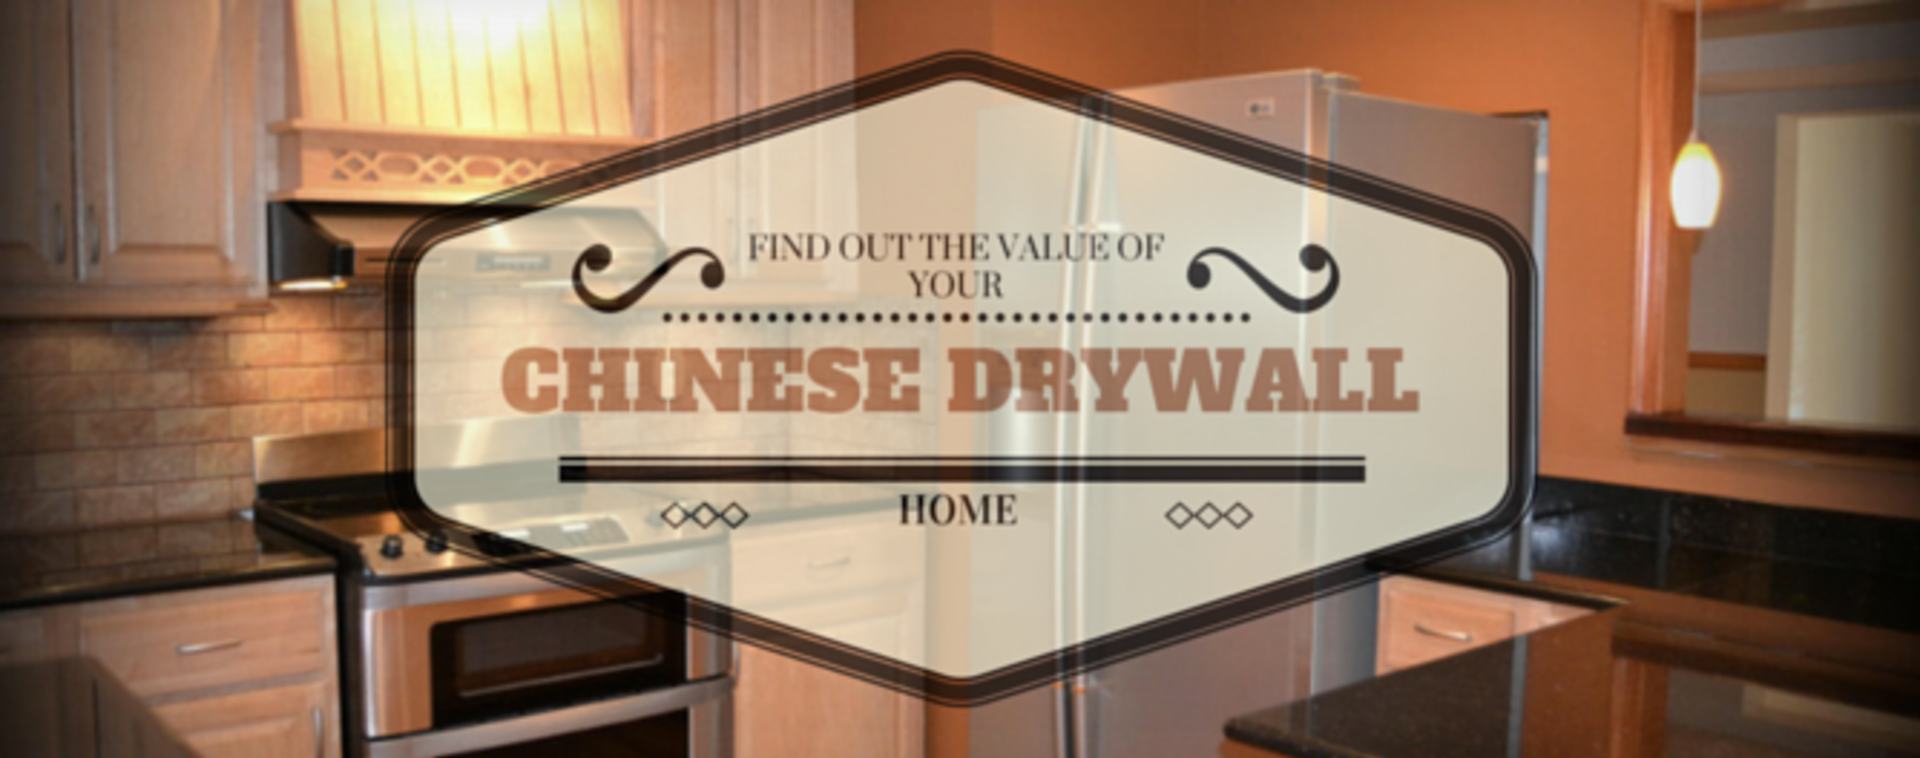 Find Out The Value Of Your Tampa Bay Chinese Drywall Home